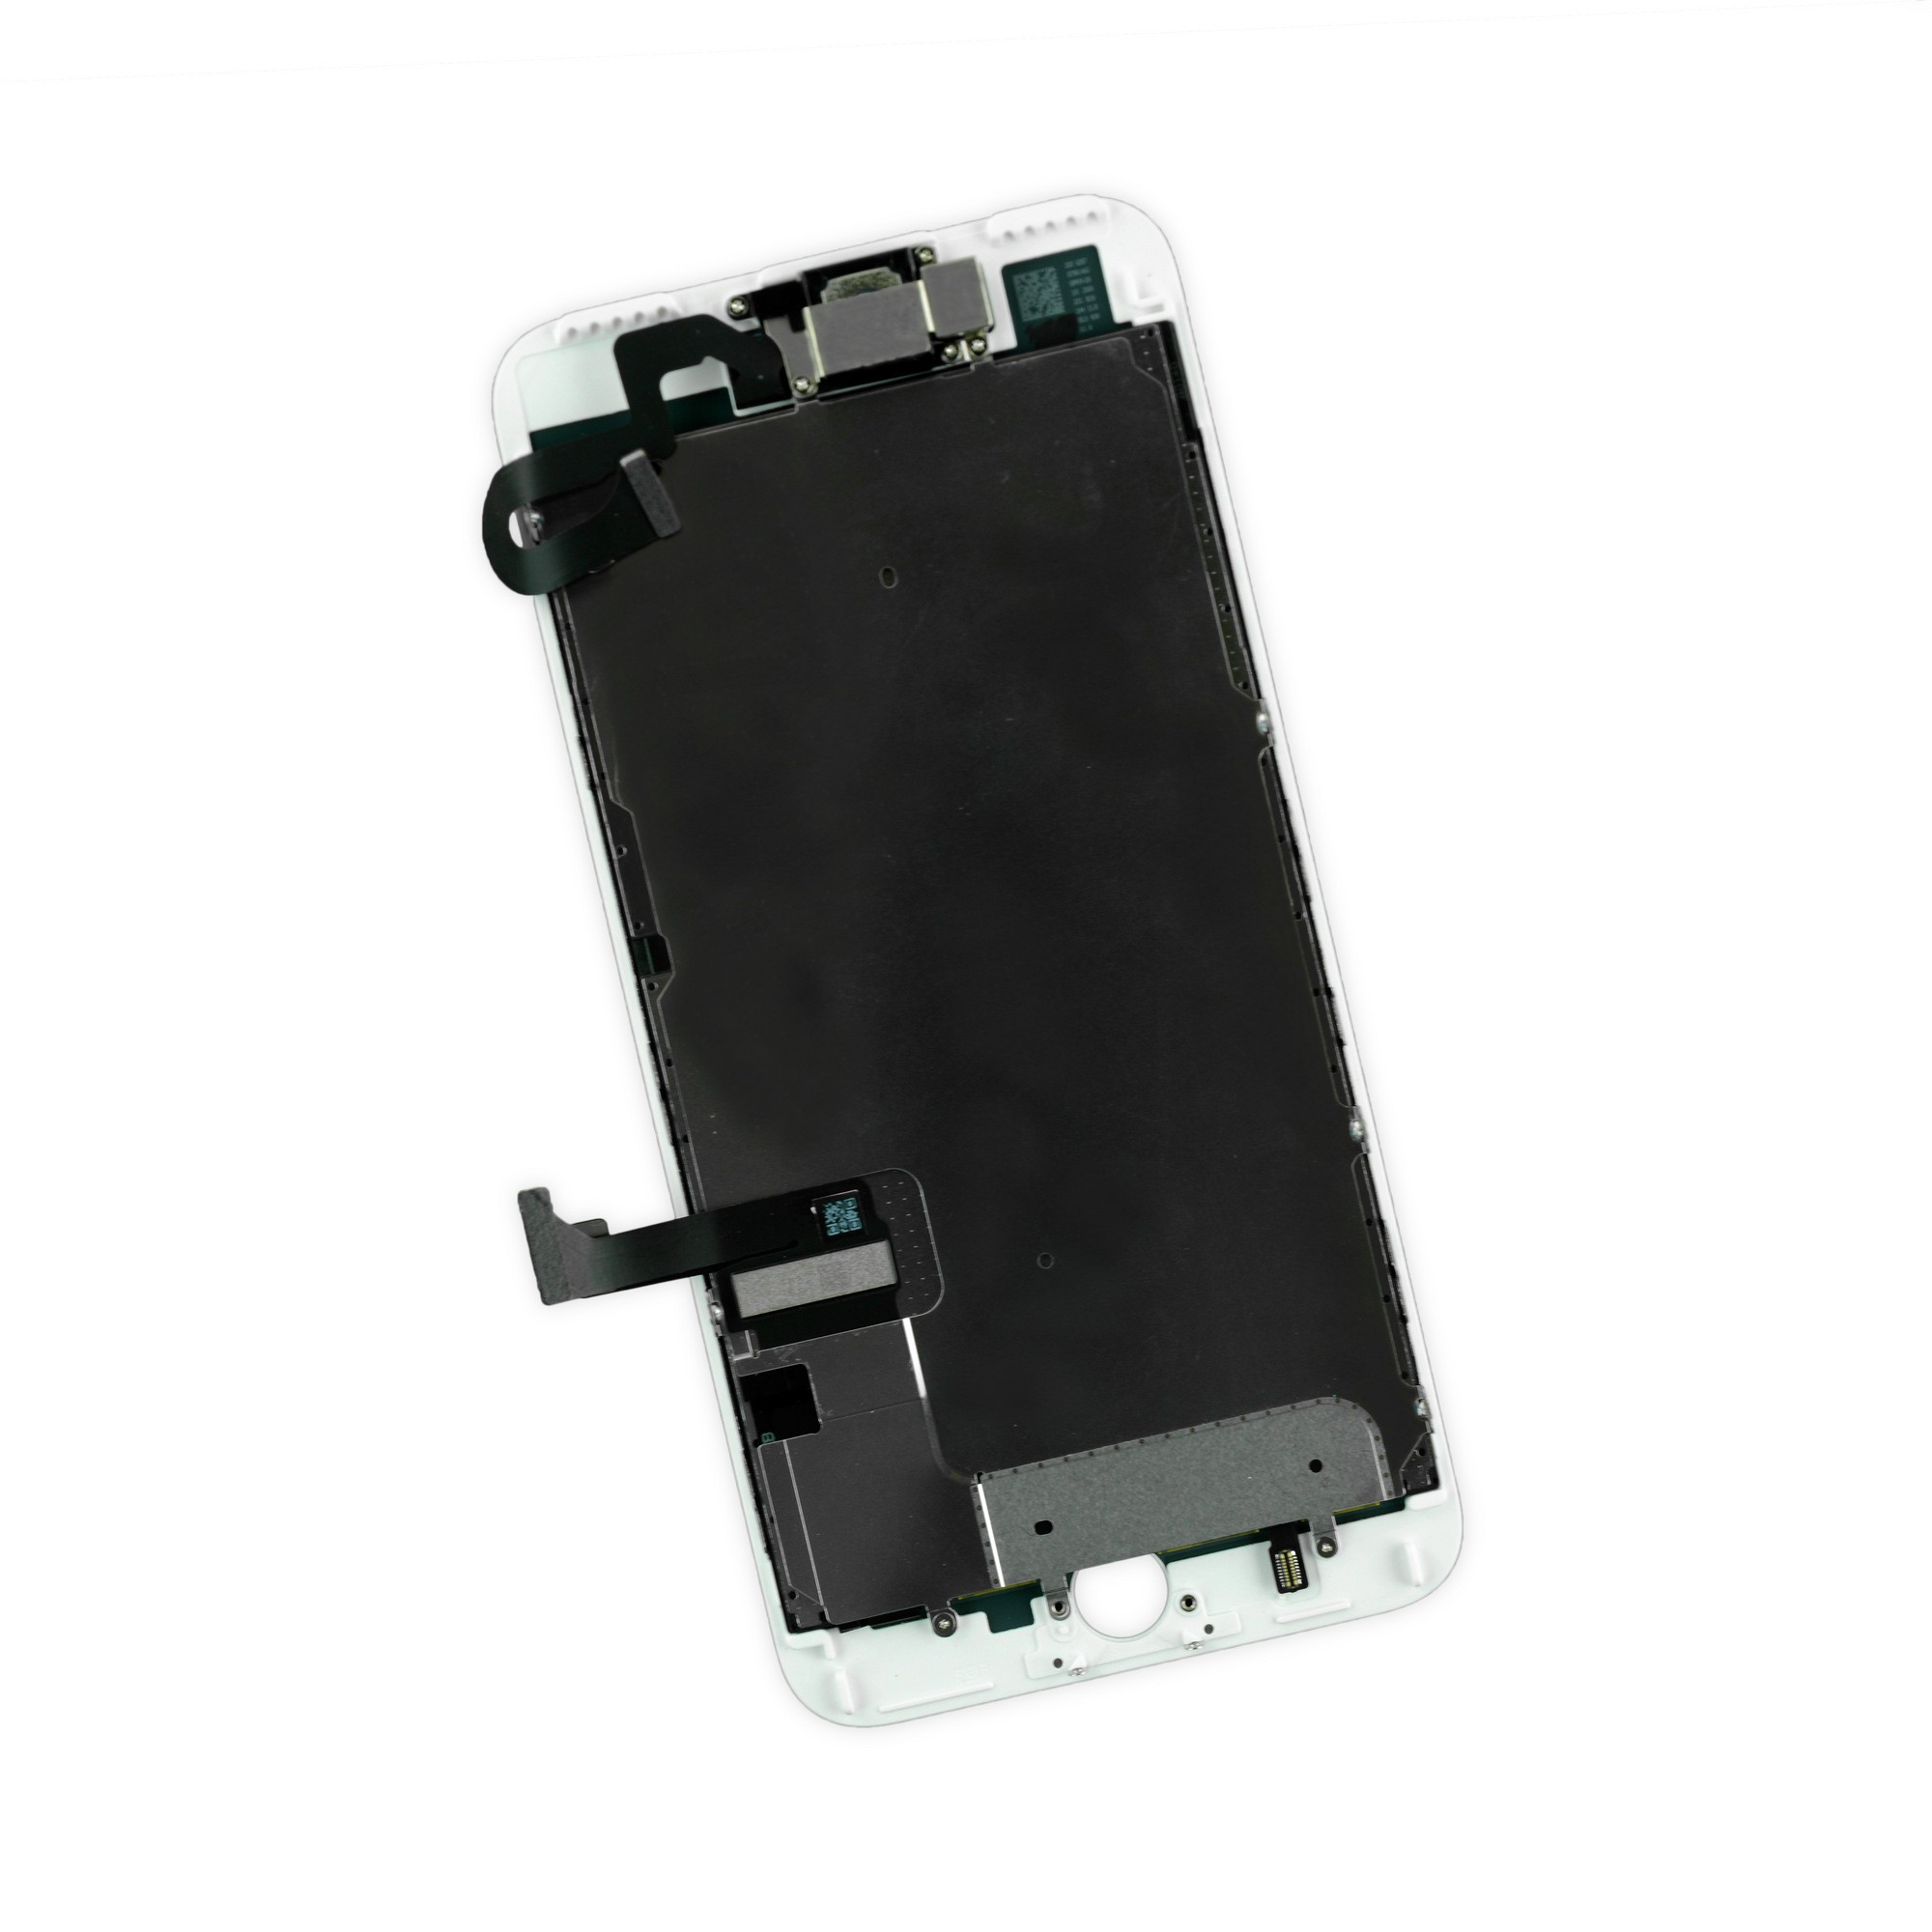 iPhone 7 Plus LCD Screen and Digitizer Full Assembly, New, Part Oly - White, IF333-038-2